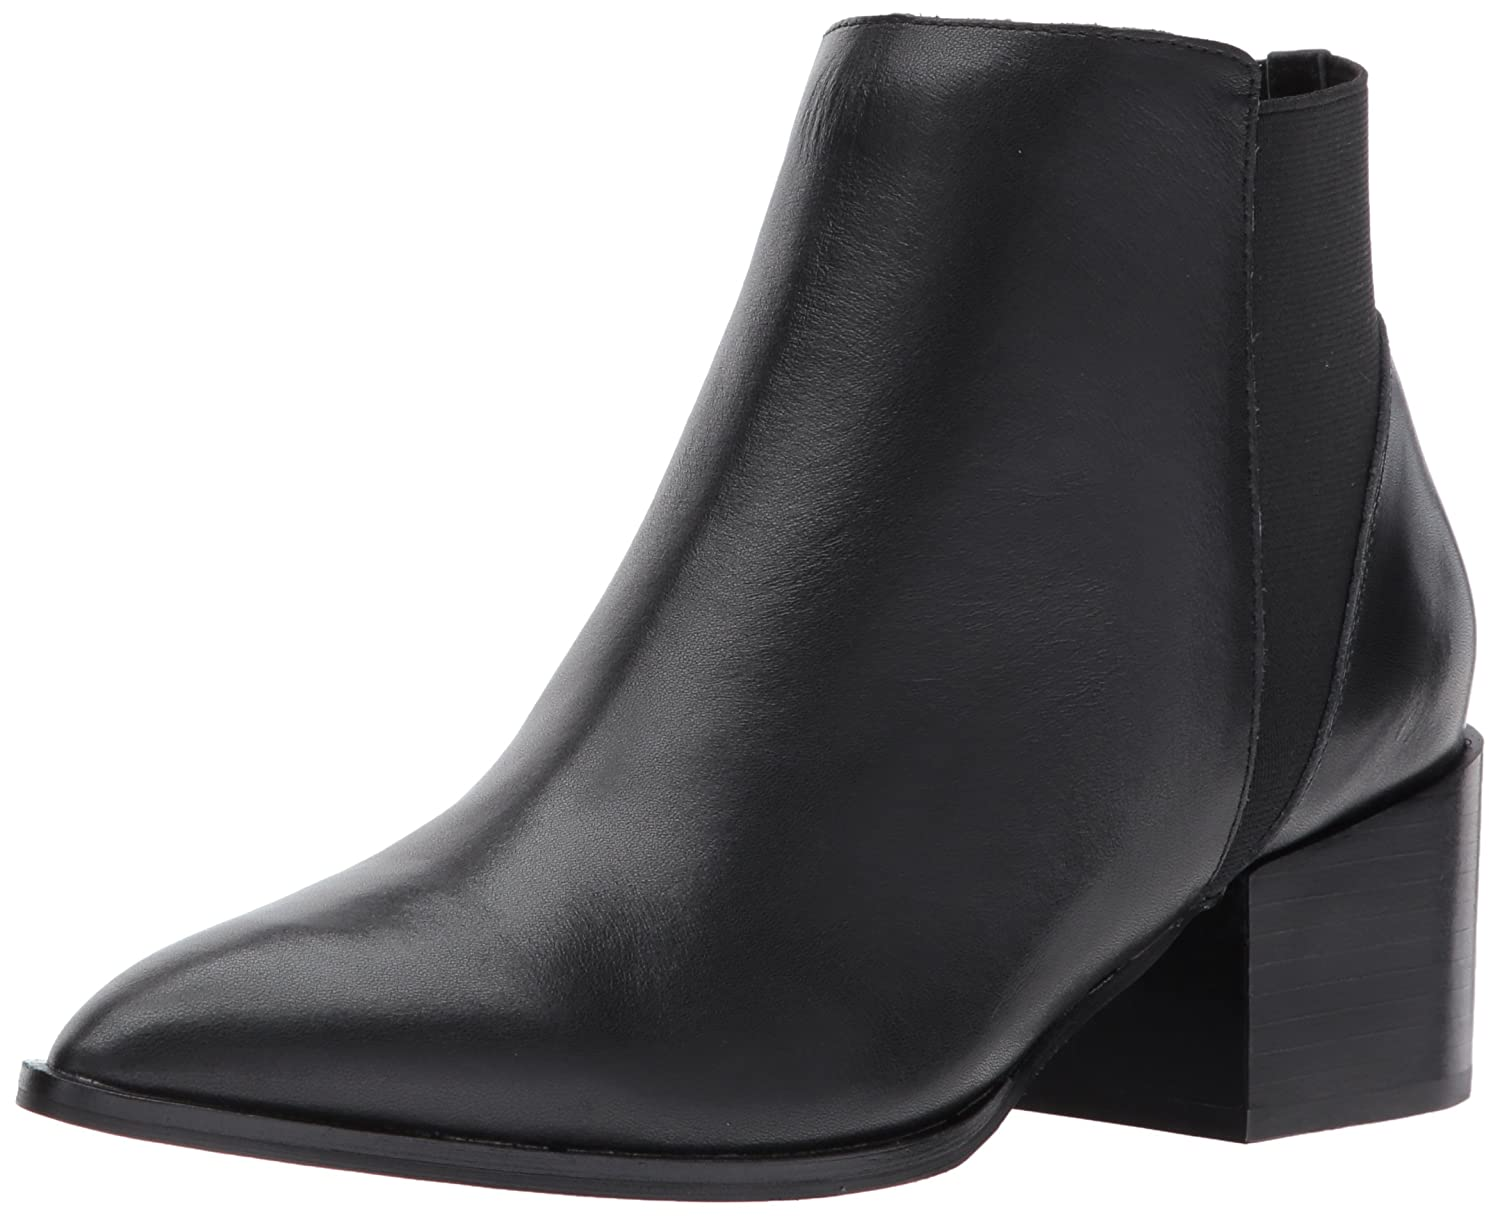 Chinese Laundry Women's Finn Ankle Bootie B0713ZDVXQ 8.5 B(M) US|Black Leather